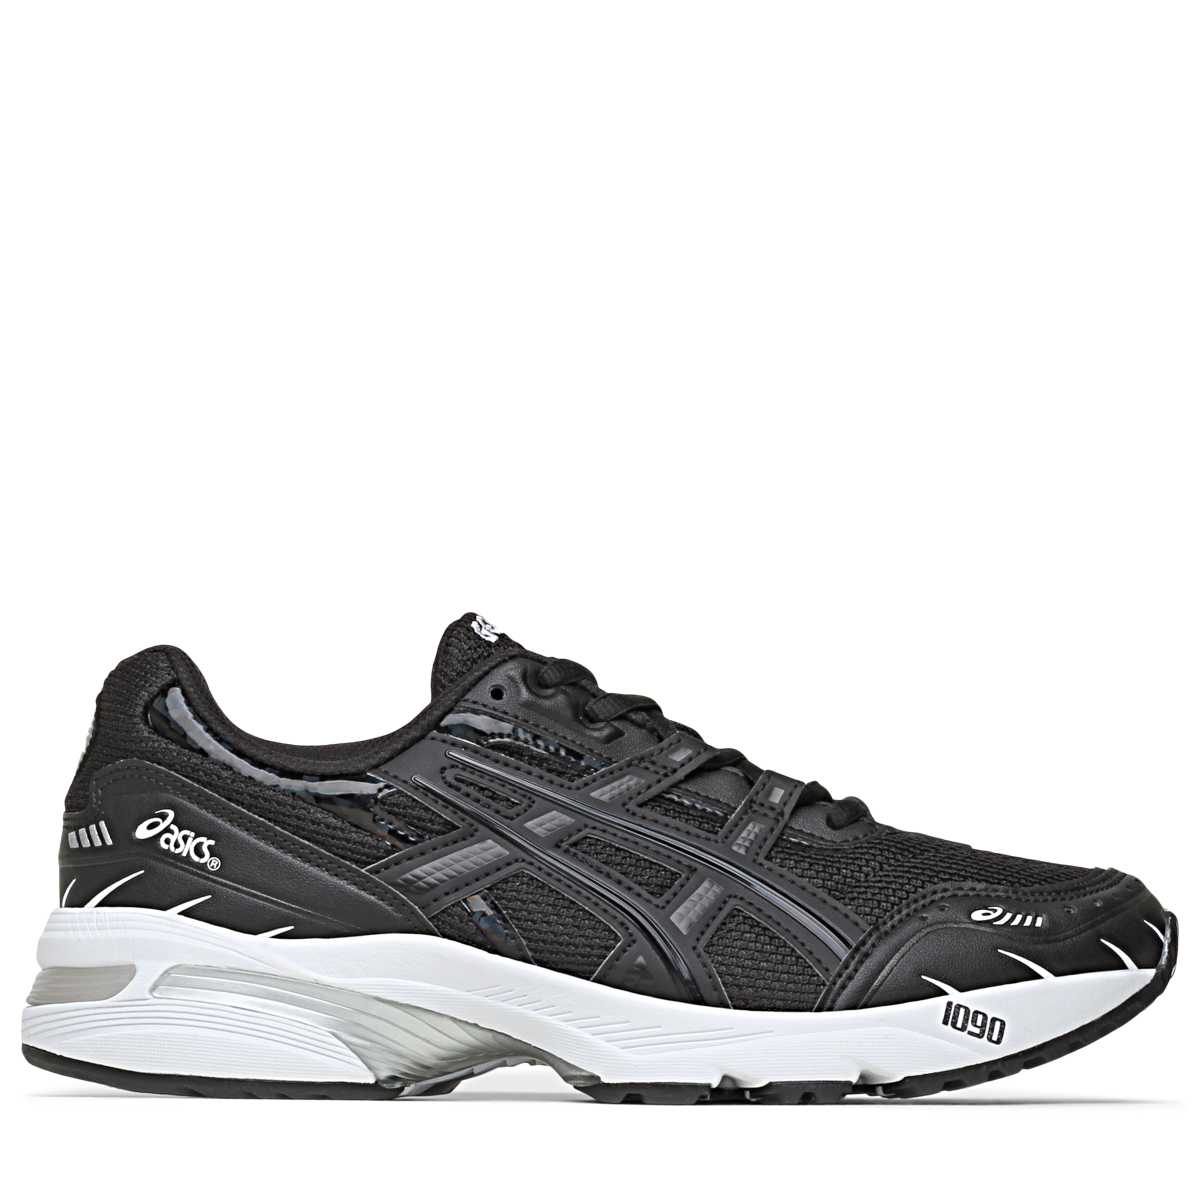 Asics - GEL-1090 - Sort